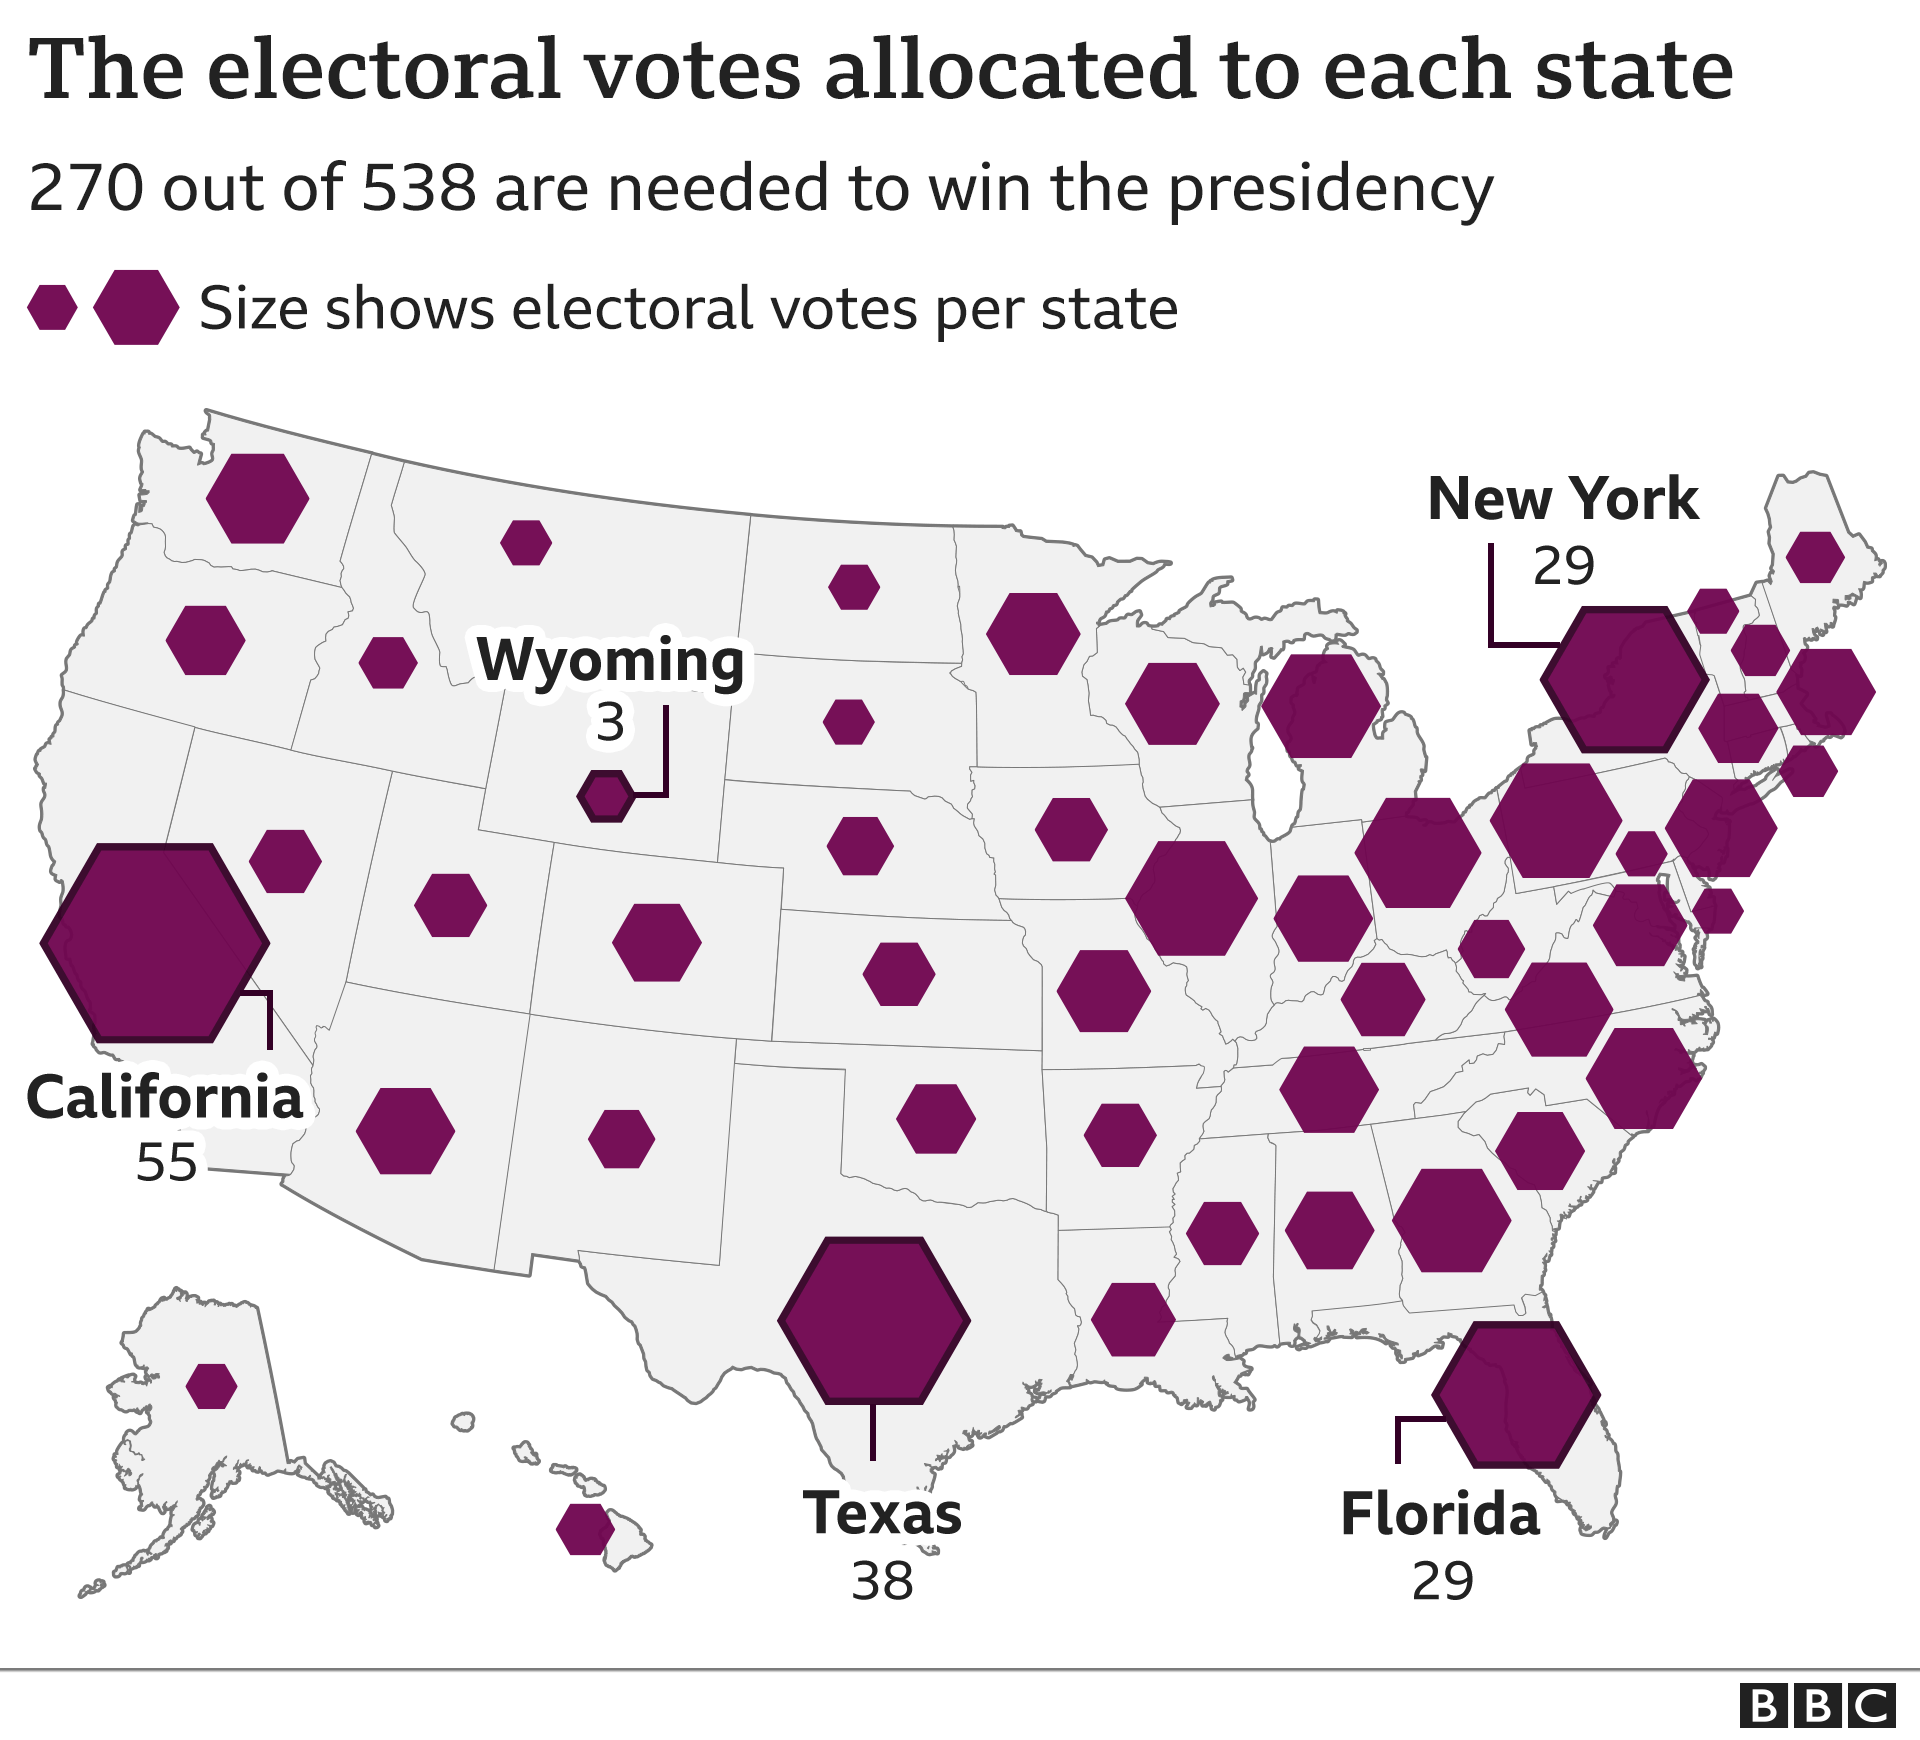 Graphic: A map of the US showing how many electoral college votes are allocated to each state